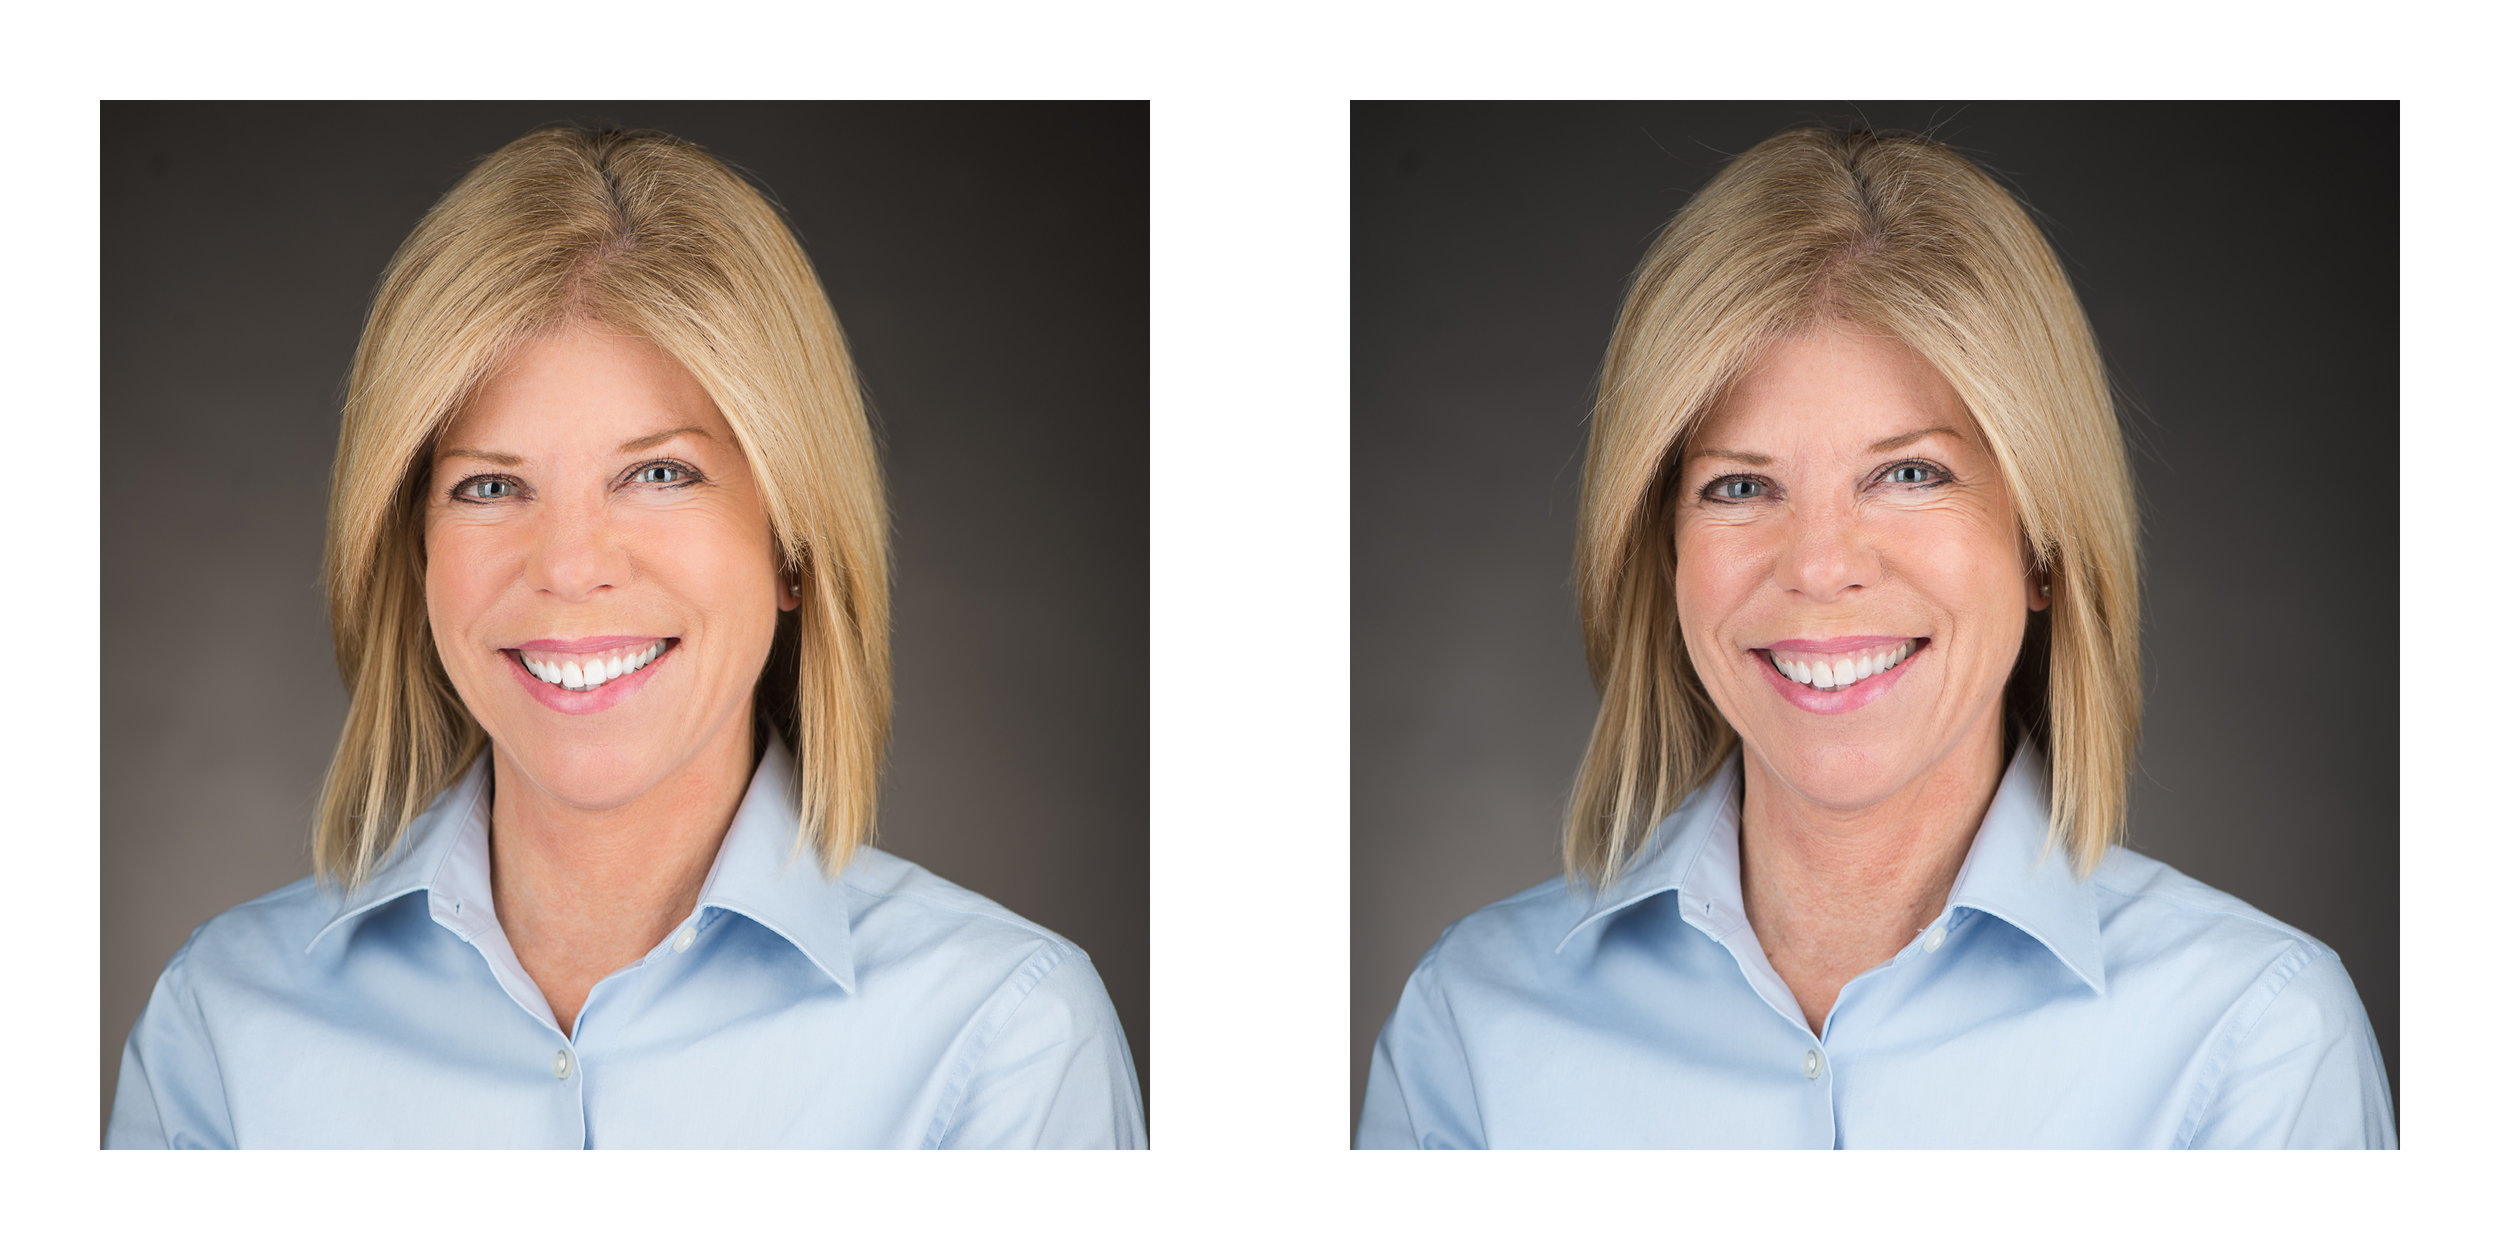 With and without retouching. It's subtle, but critical. Show your clients that details matter!